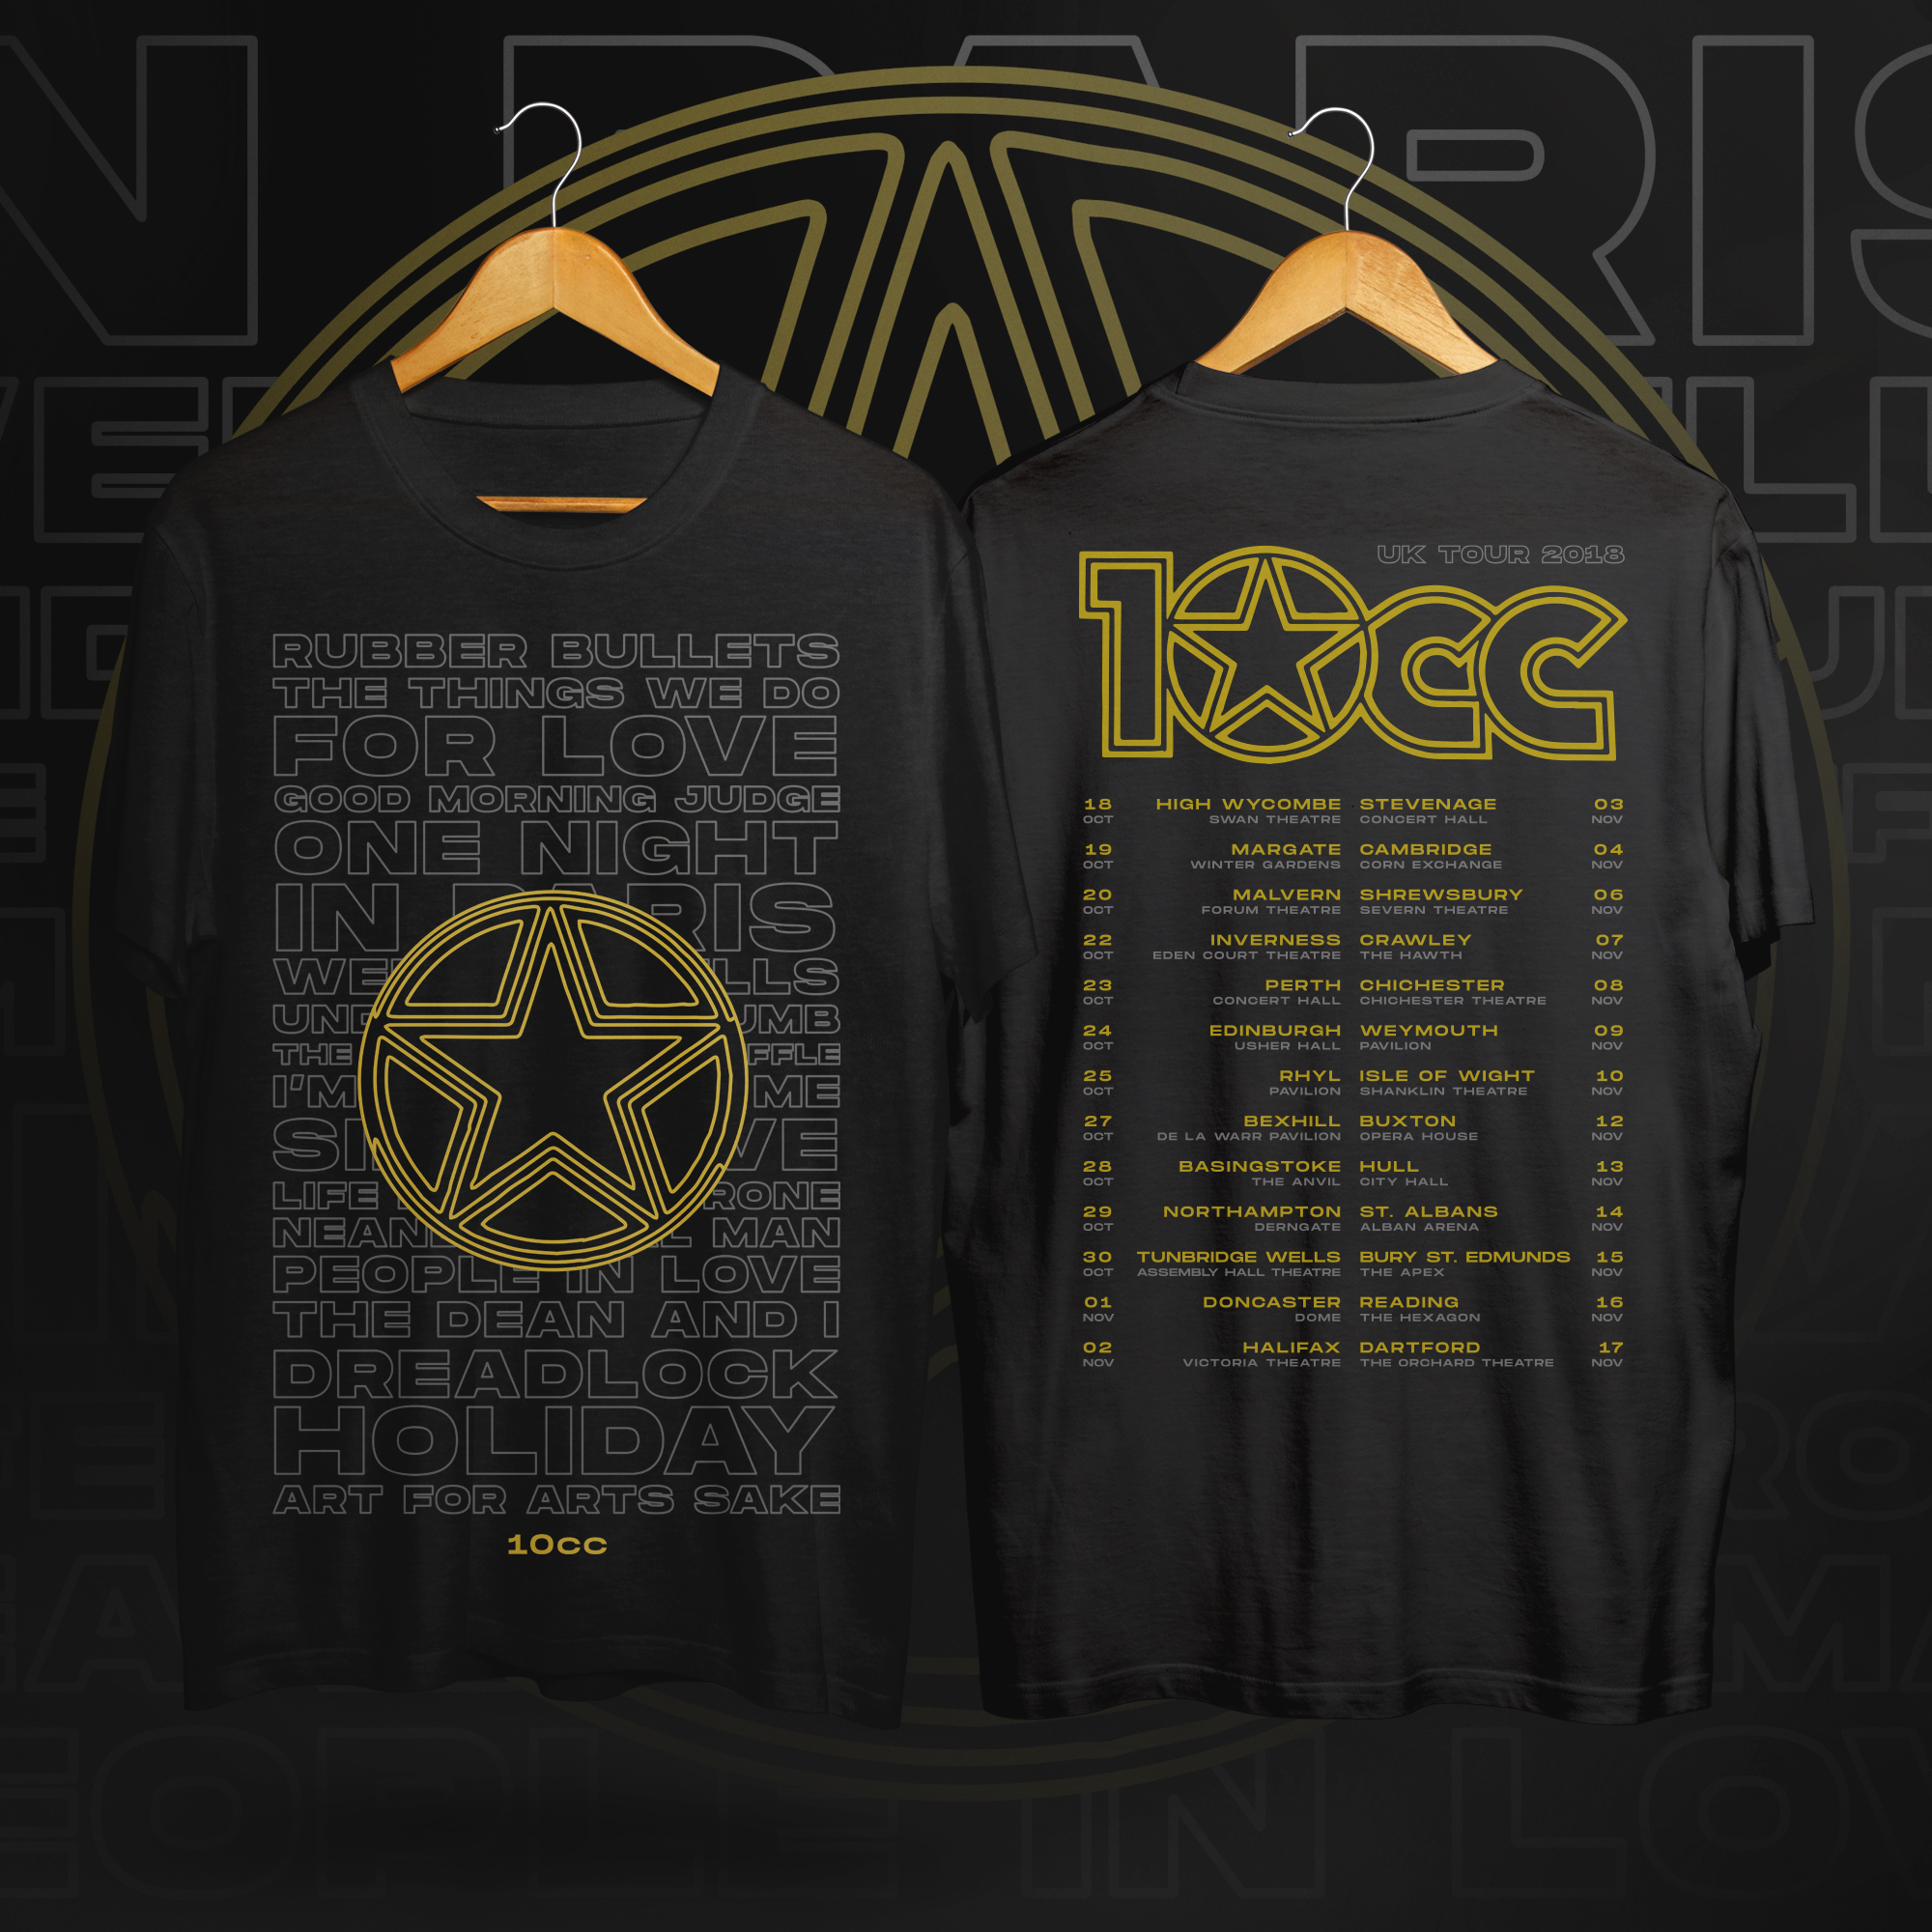 2018 Tour T-shirt (Black) - 10CC